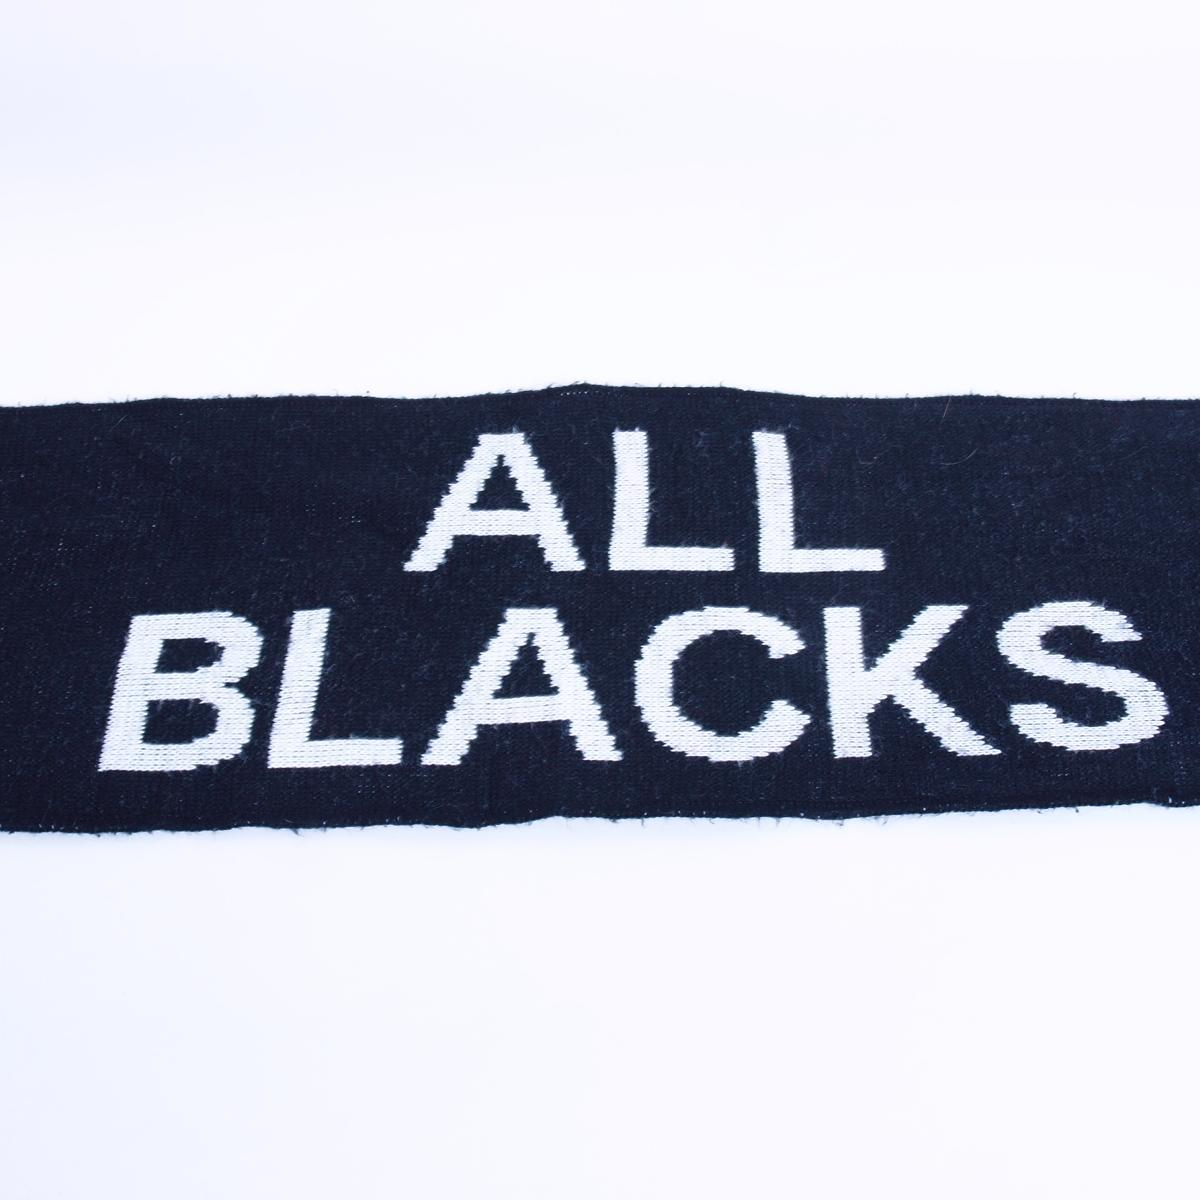 Adidas football club scarves all blacks football scarf adidas /anb0048 160831